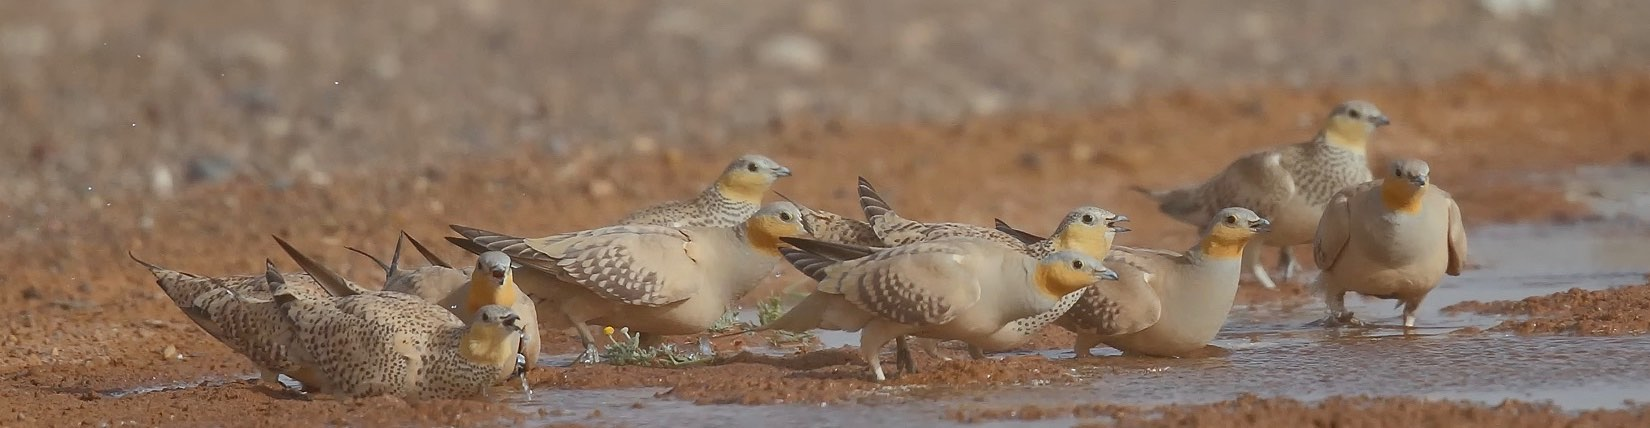 Gamebirds in Africa, drinking water in Namibia on a sustainable-use shooting safari.